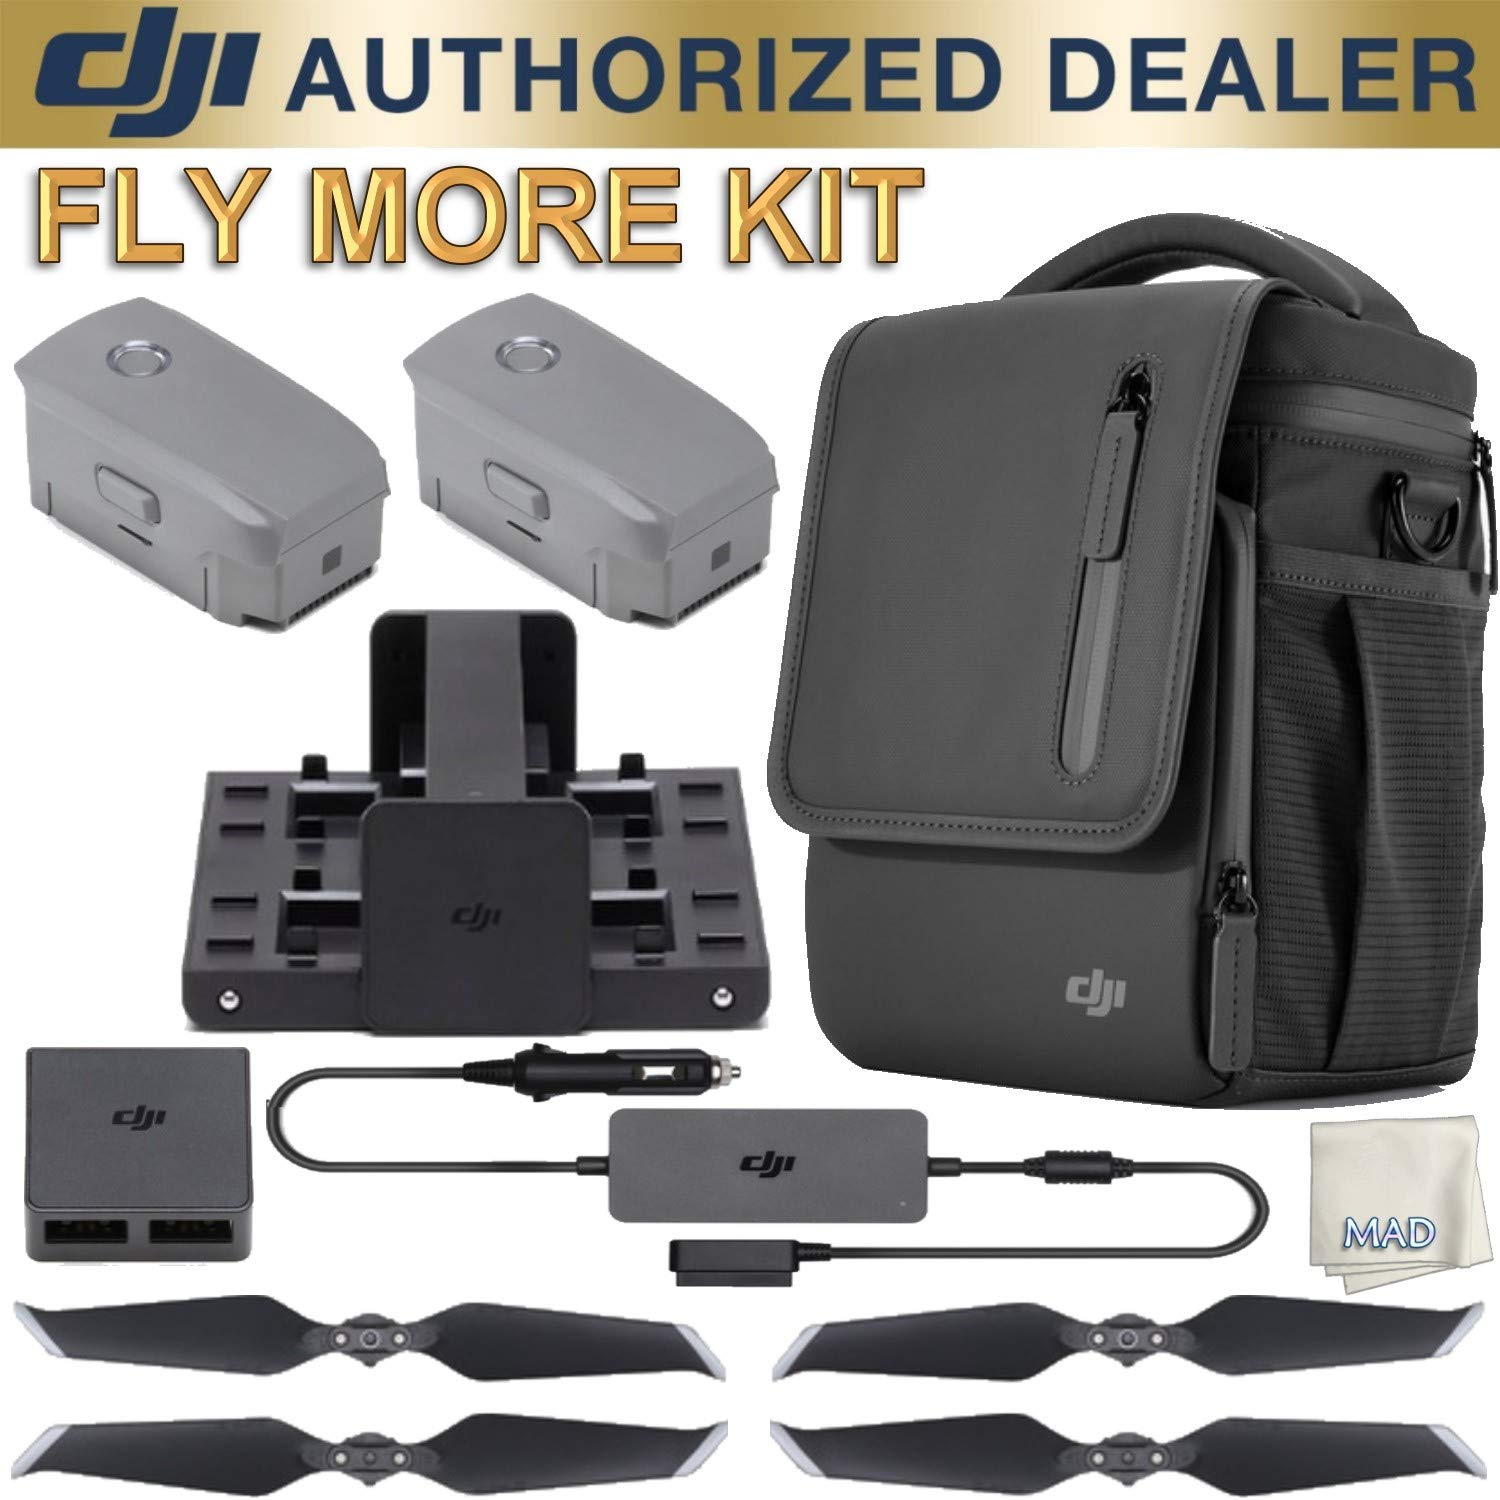 DJI Fly More Kit Mavic 2 + Mad Cameras Microfiber Cleaning Cloth